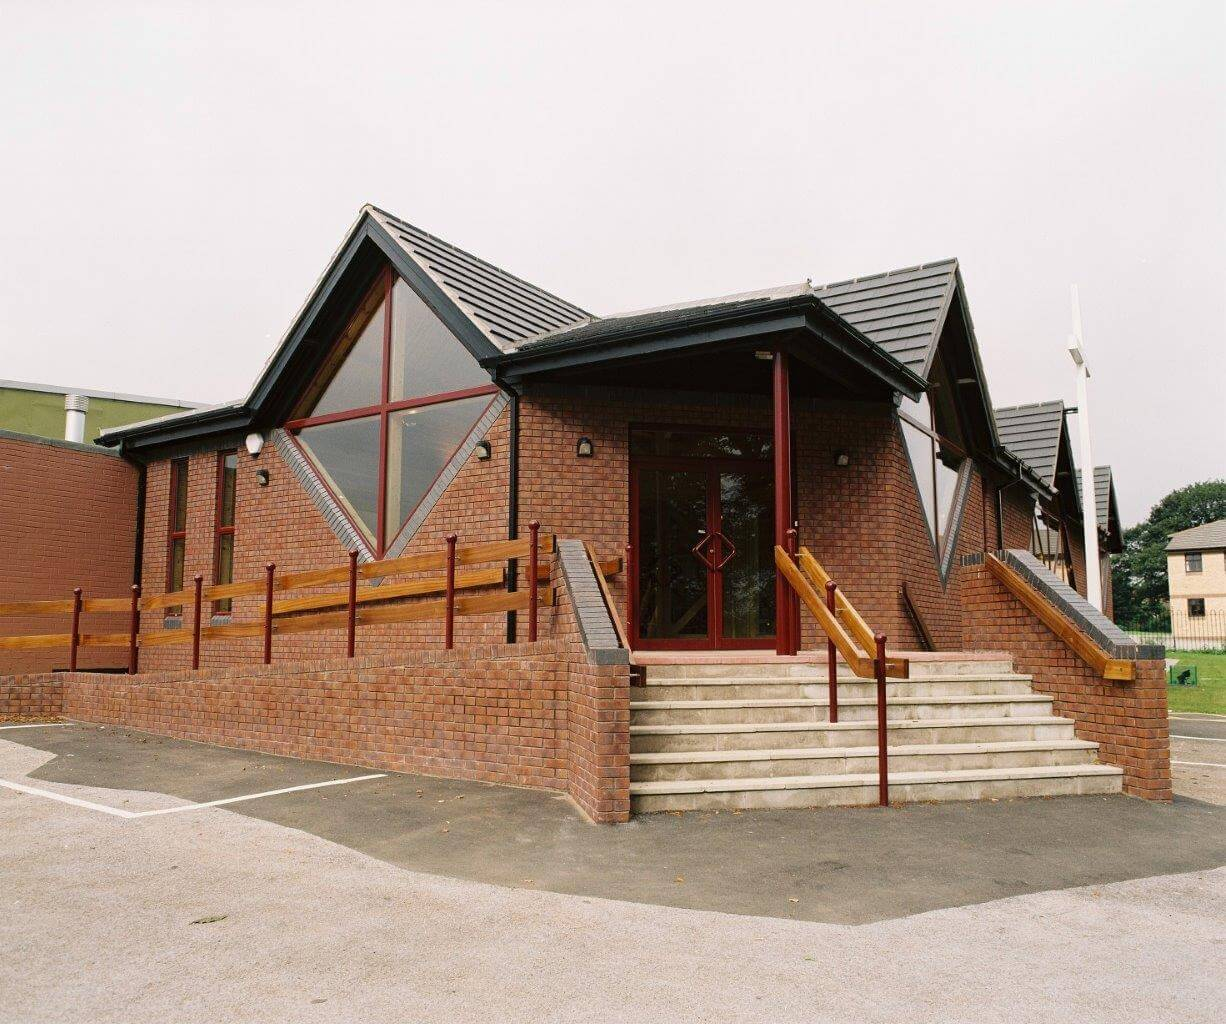 External view of Church building for Nottinghamshire Methodists